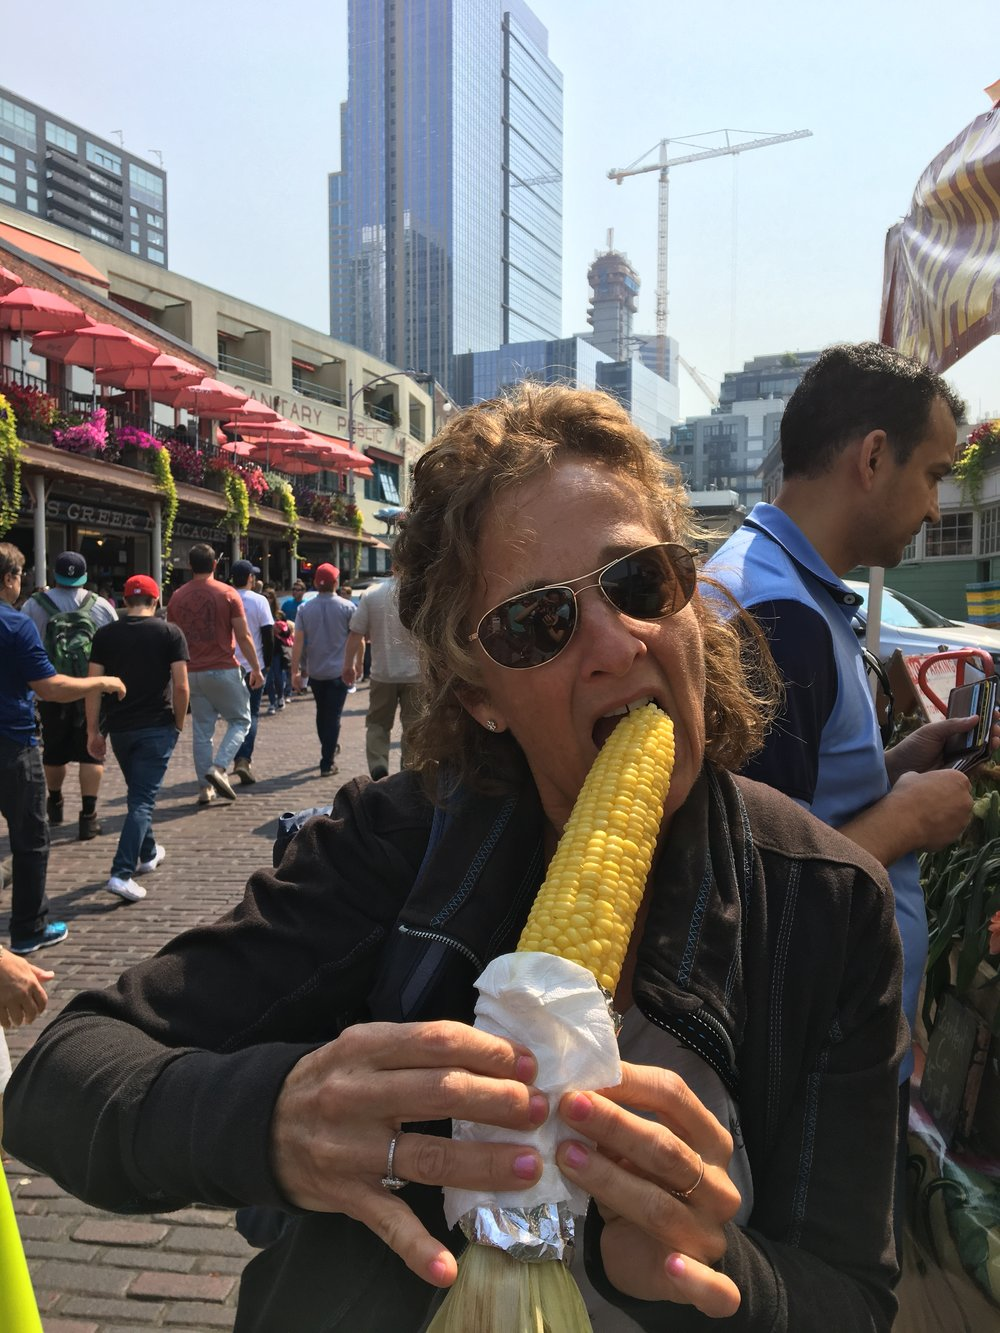 My sister Laura thinks the corn is great too!